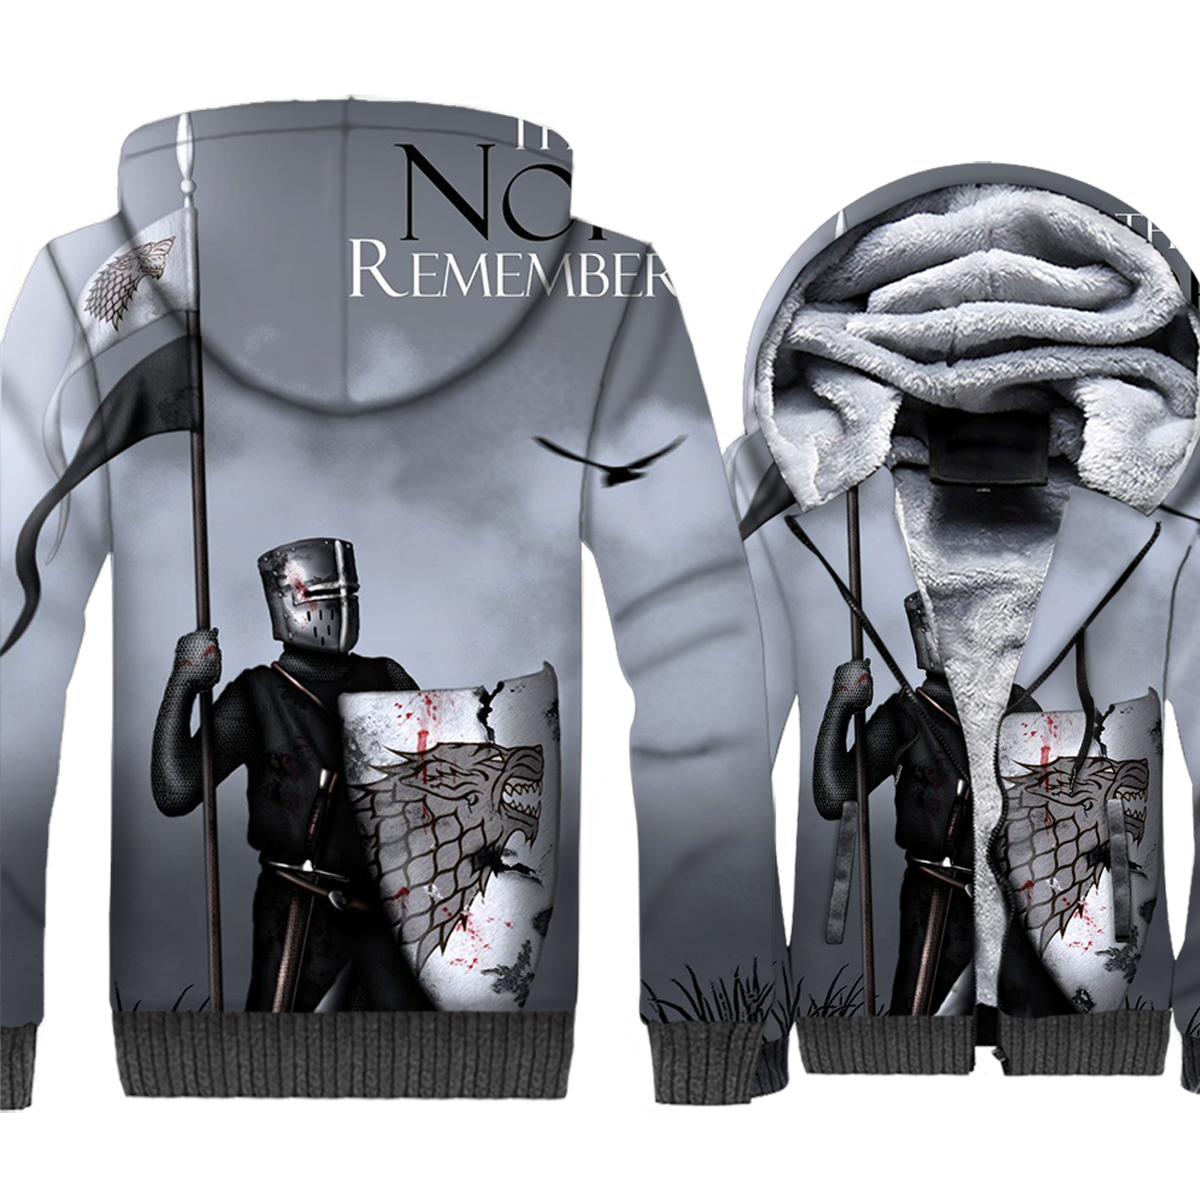 Game of Thrones Hoodies Men 3D Jacket House Stark The North Remembers Sweatshirt Winter Thick Fleece Wolf Coat Hipster Clothes